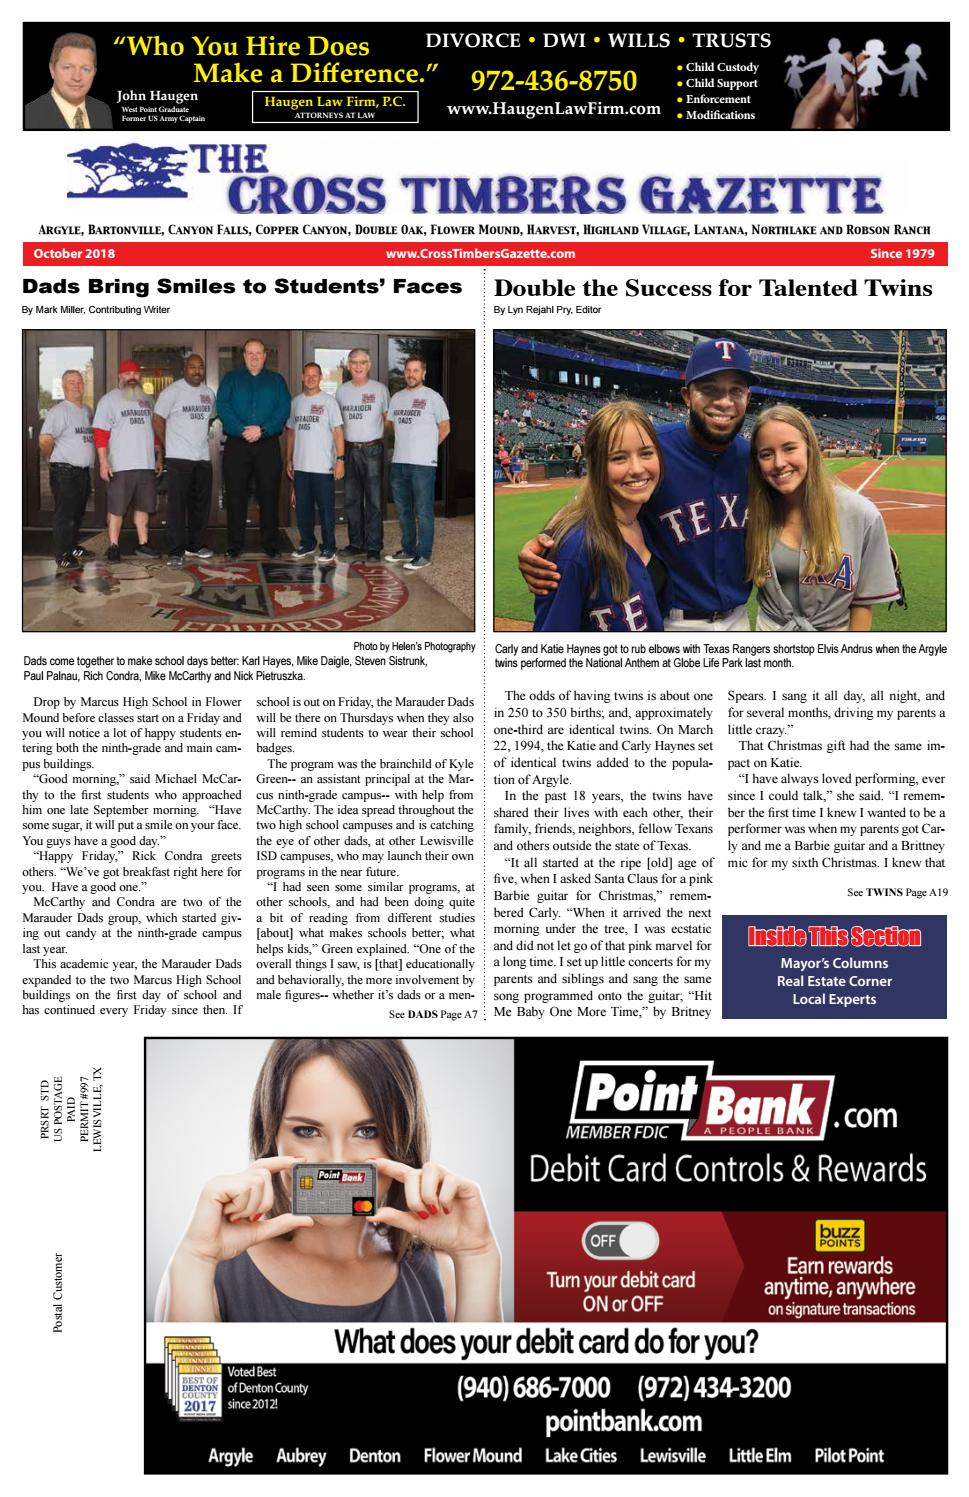 The Cross Timbers Gazette October 2018 by The Cross Timbers